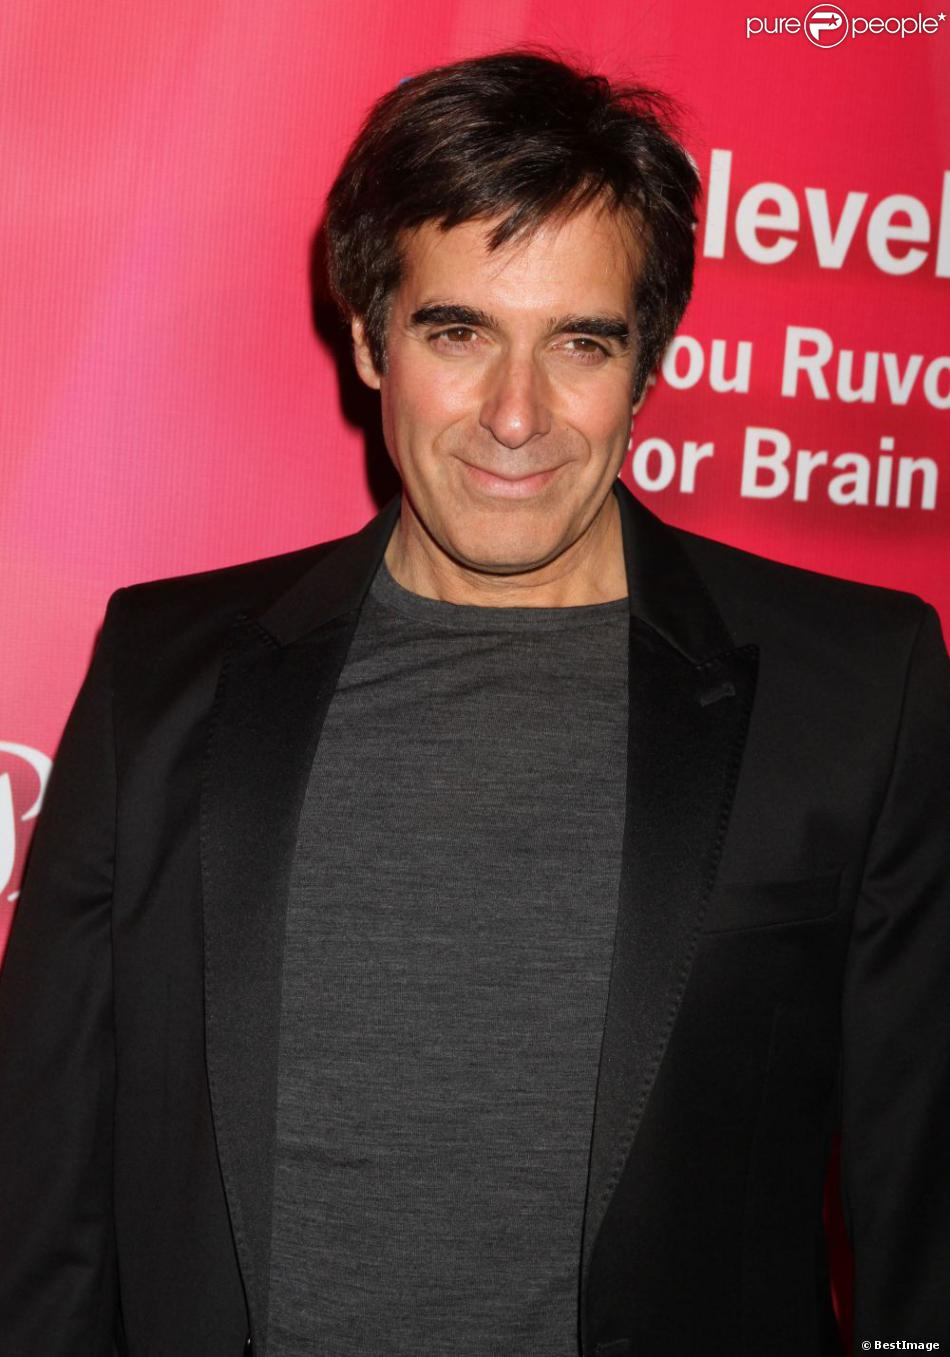 David Copperfield à Las Vegas, le 18 février 2012.